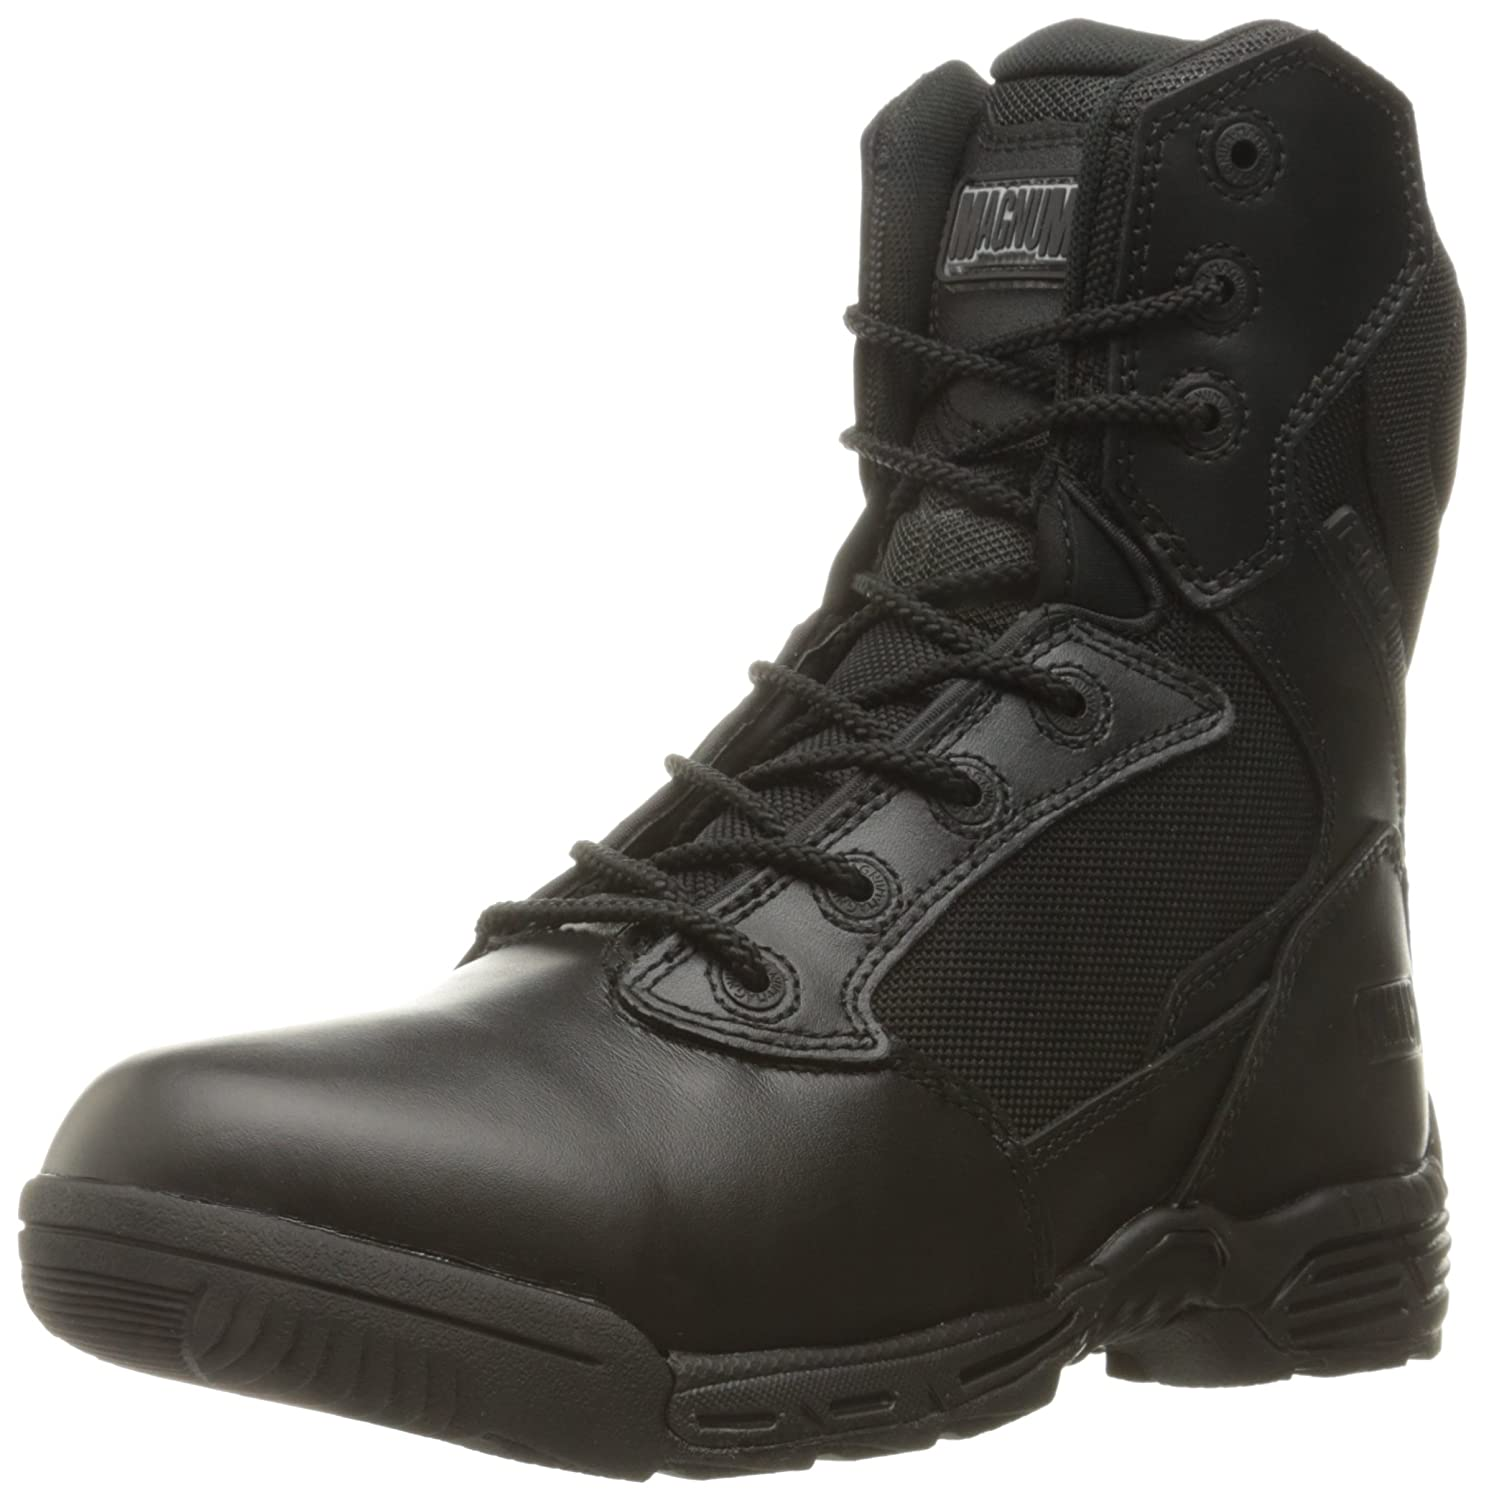 Magnum Women's Stealth Force 8.0 Side Zip Military and Tactical Boot B003OETV3G 8.5 B(M) US|Black